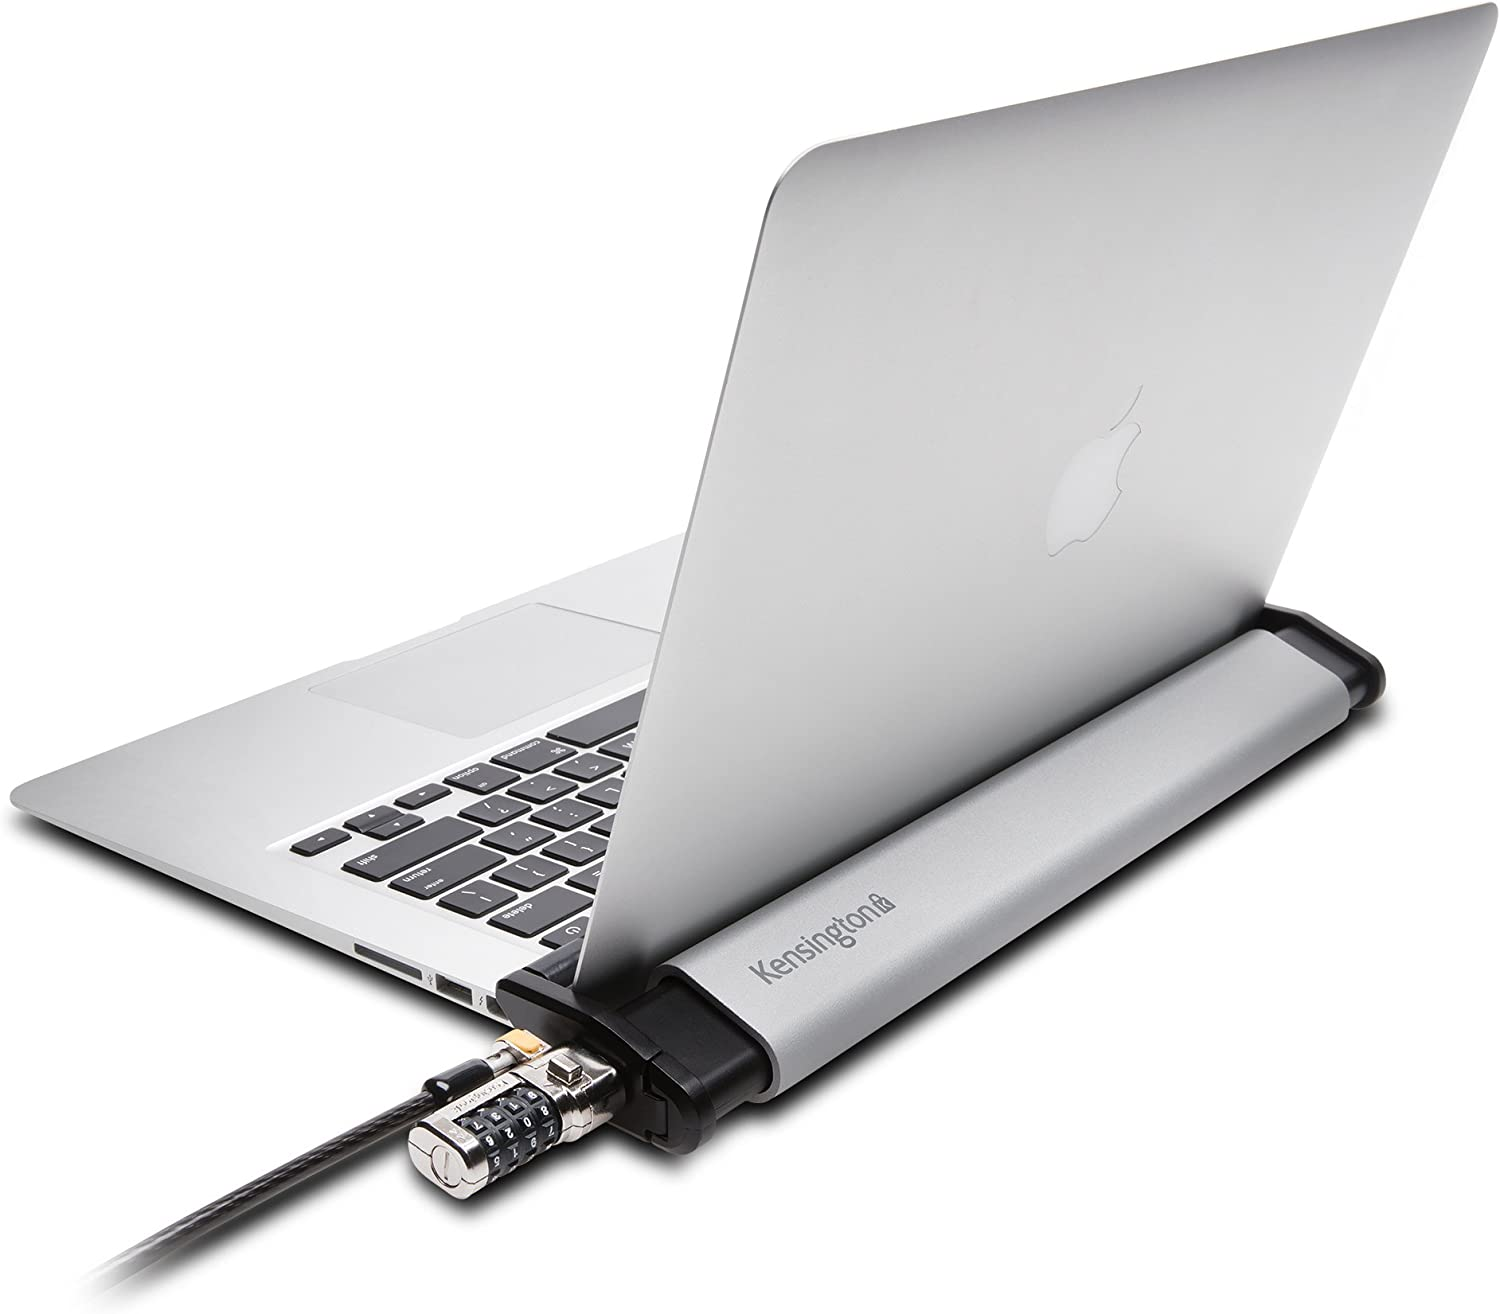 Kensington MacBook and Surface Laptop Locking Station with Combo Lock Cable (K64454WW)